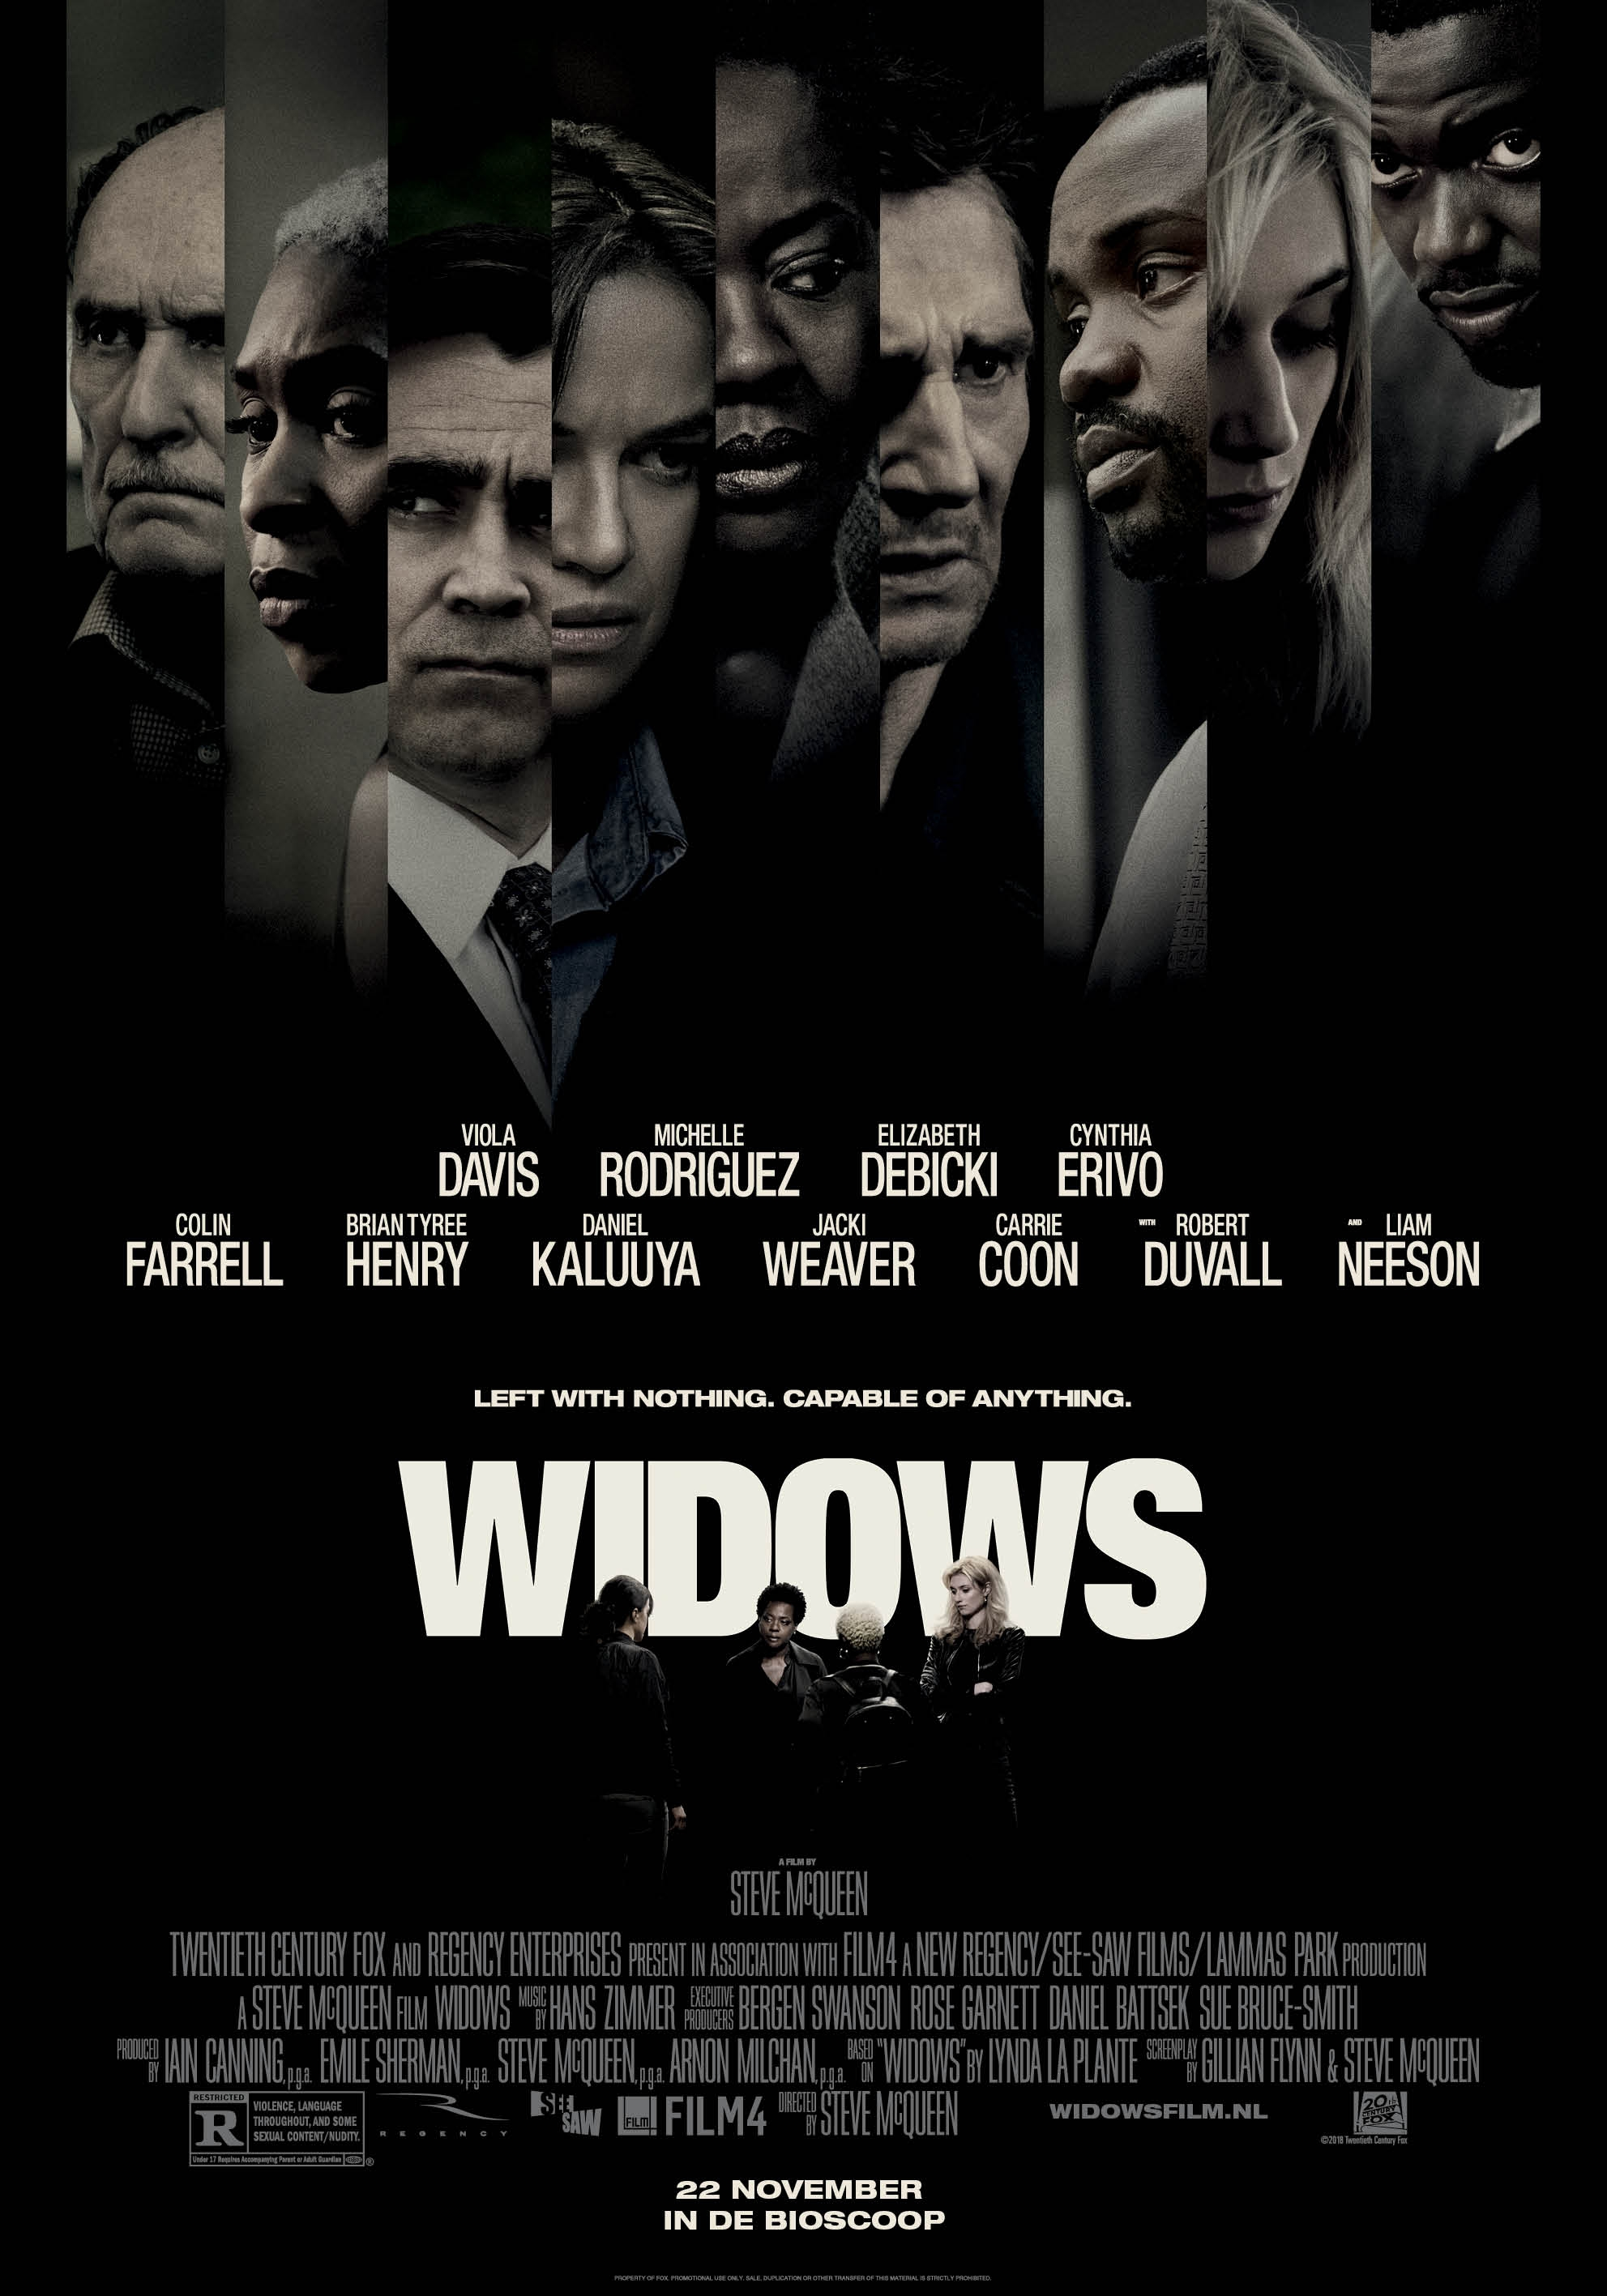 Widows poster, © 2018 20th Century Fox